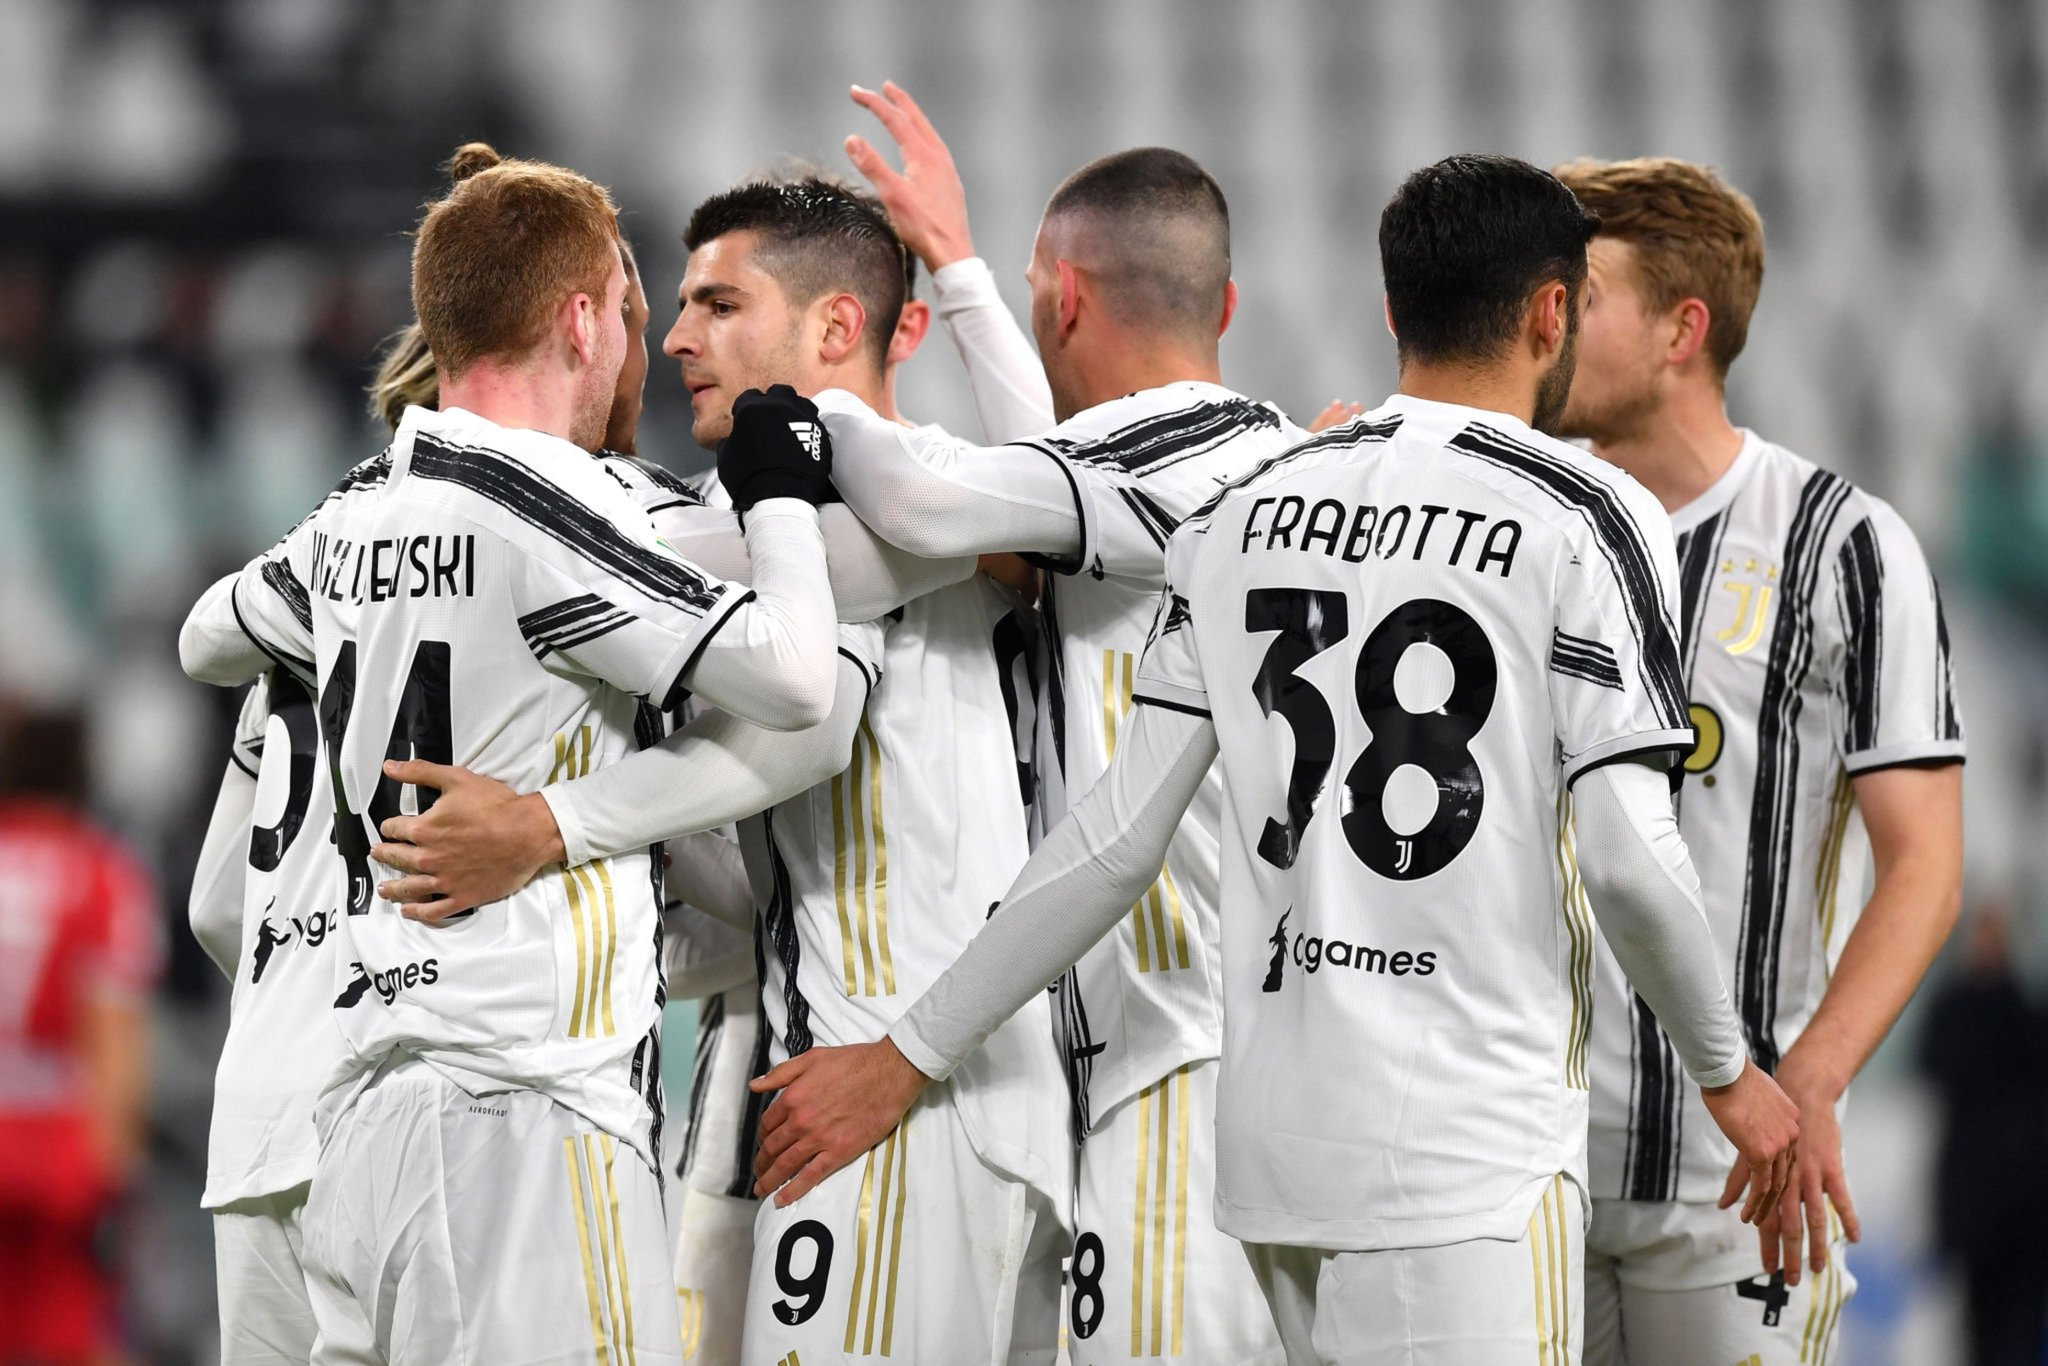 Champions Juventus will hope to leapfrog their opponents in the standings when Roma make the trip to Turin